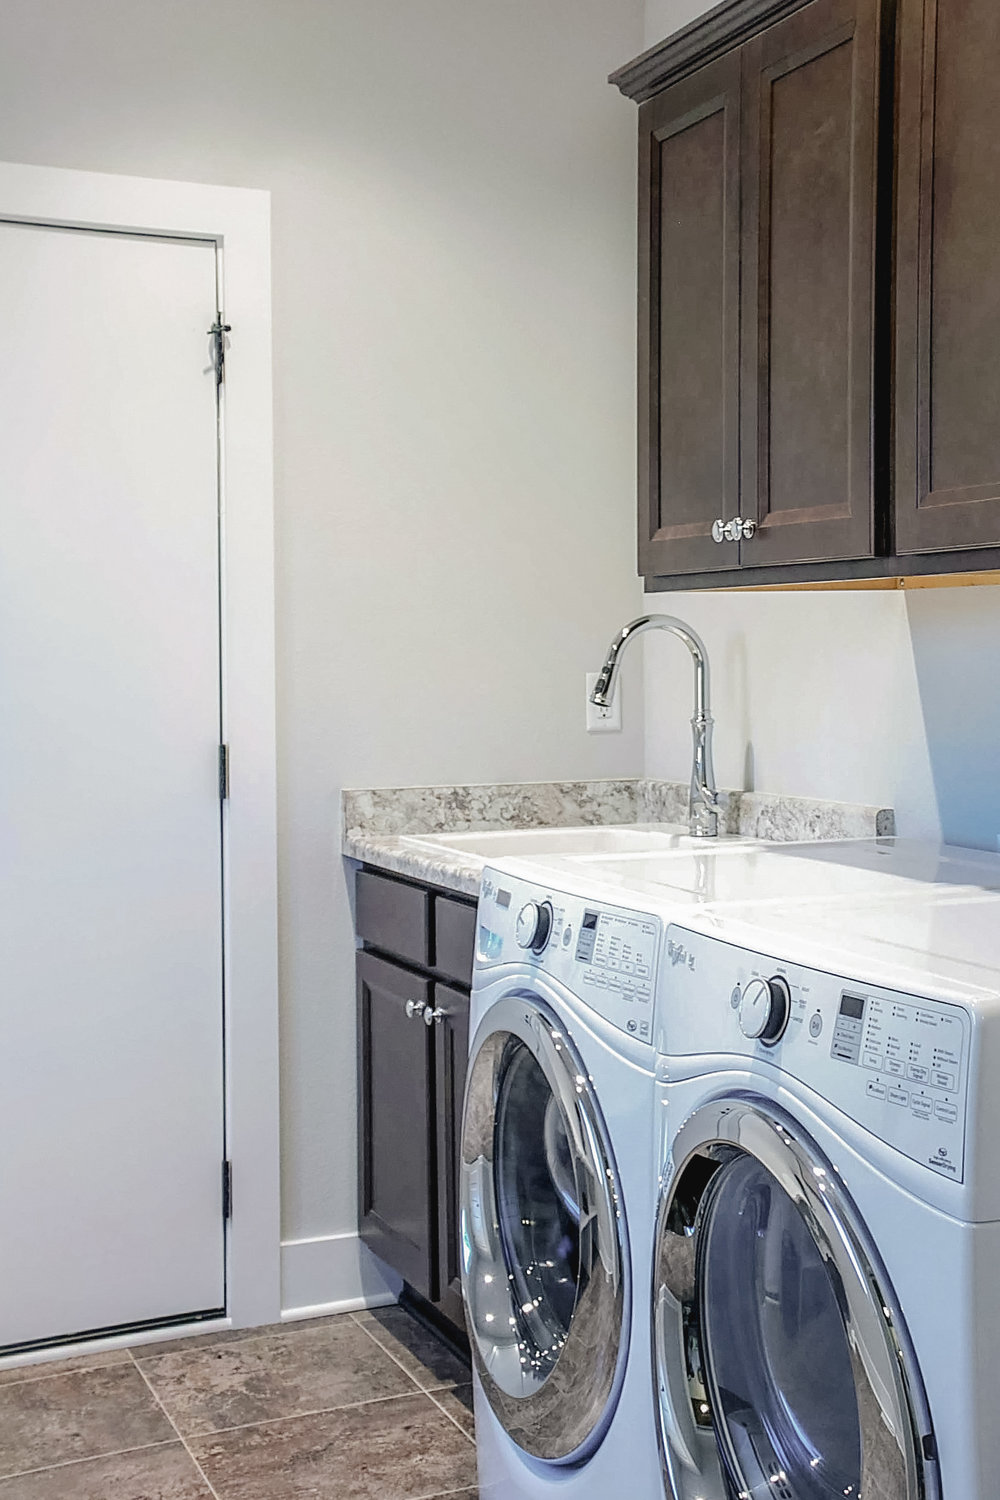 Small Space Laundry Design - The washer, dryer, and a slop sink all fit within about 8 ft in this compact laundry space. Even important storage cabinetry is provided above the washer and dryer, and the two machines held close together provide a flat surface area in lieu of extra countertop.